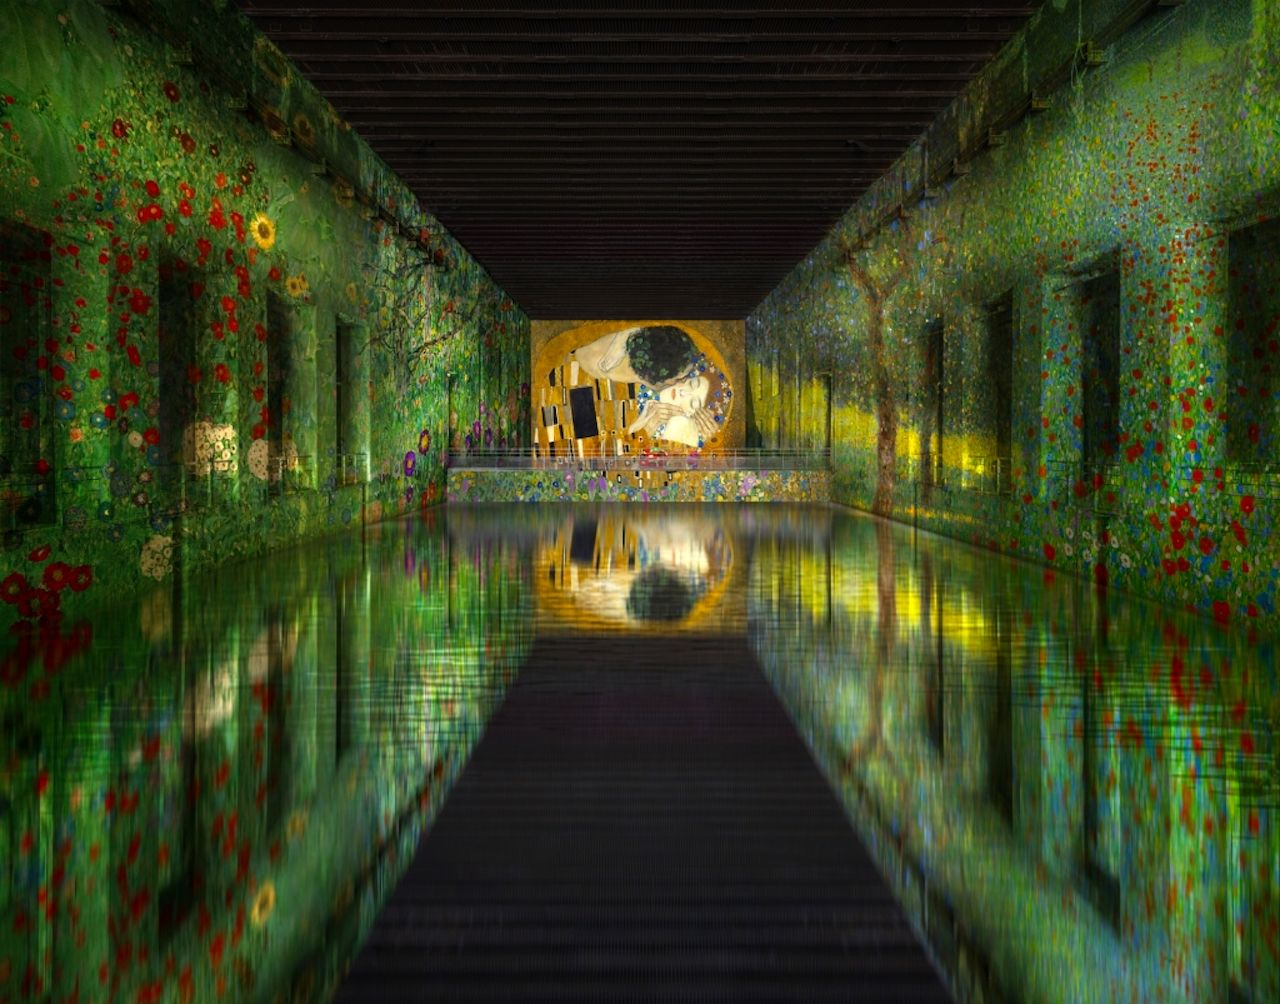 WWII submarine base turned into digital art museum